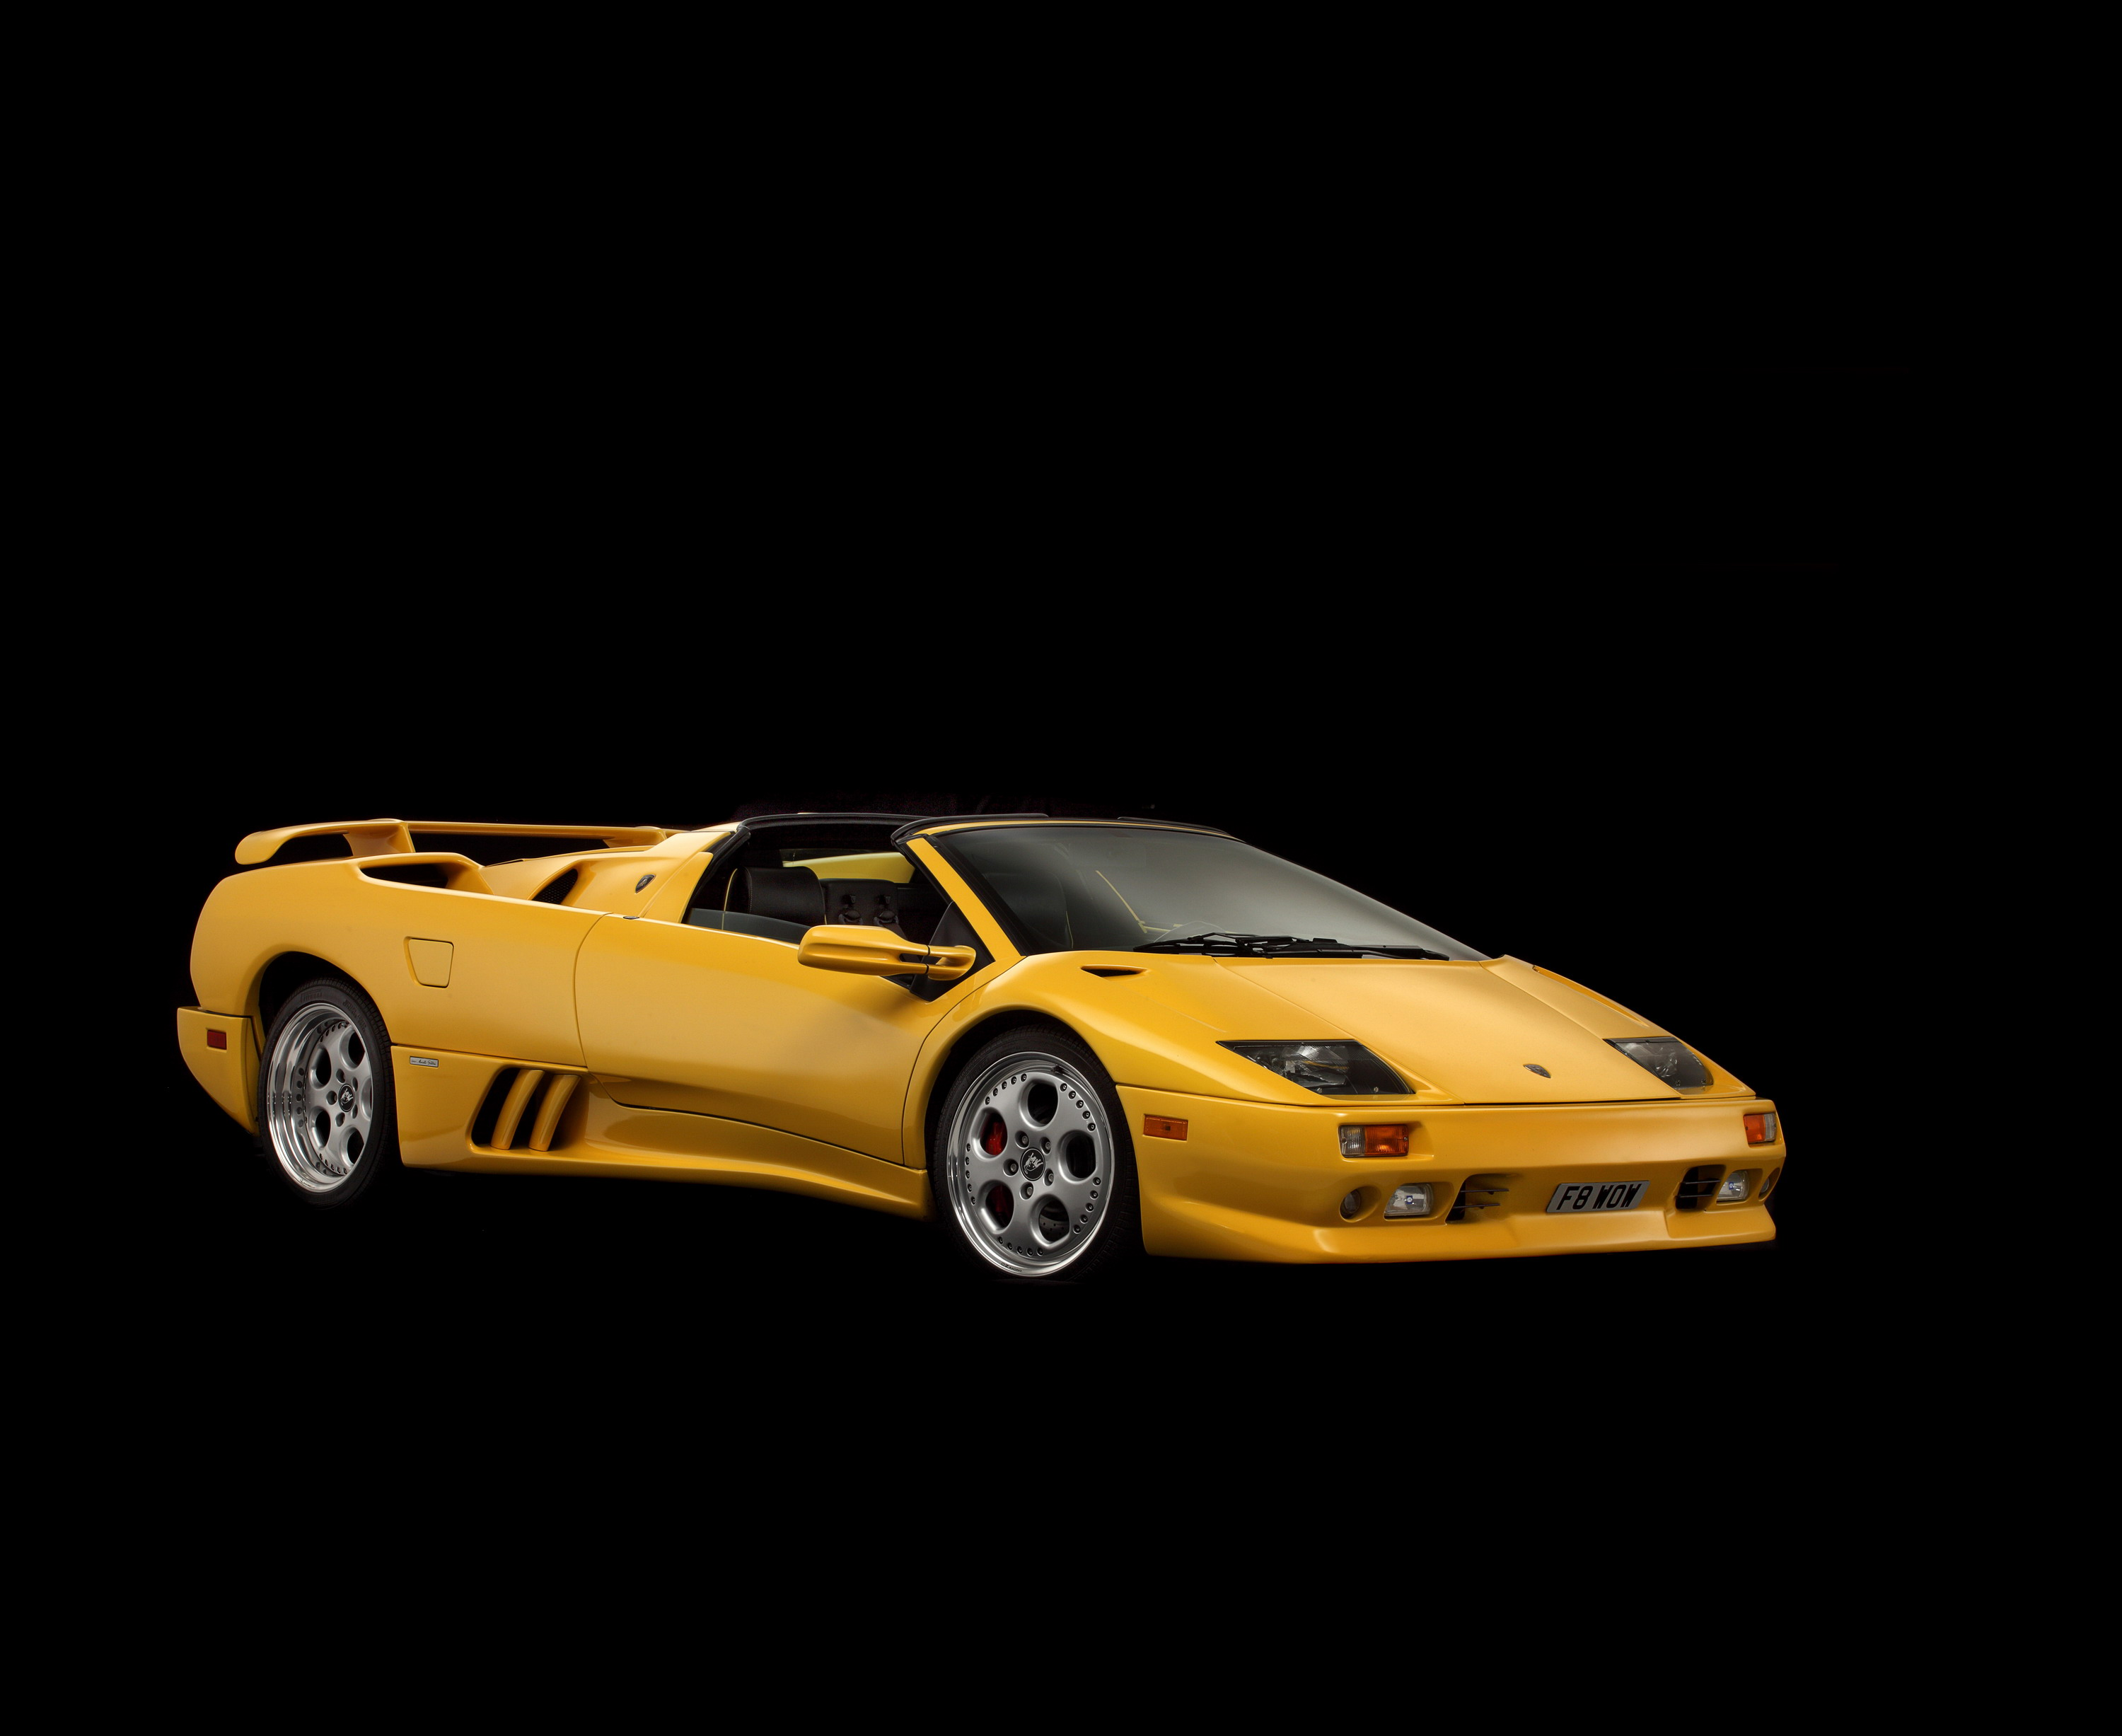 everything awesome classic i nrm rm darin courtesy culture countach miura news auctions series car this c lamborghini poster lp cars is schnabel about